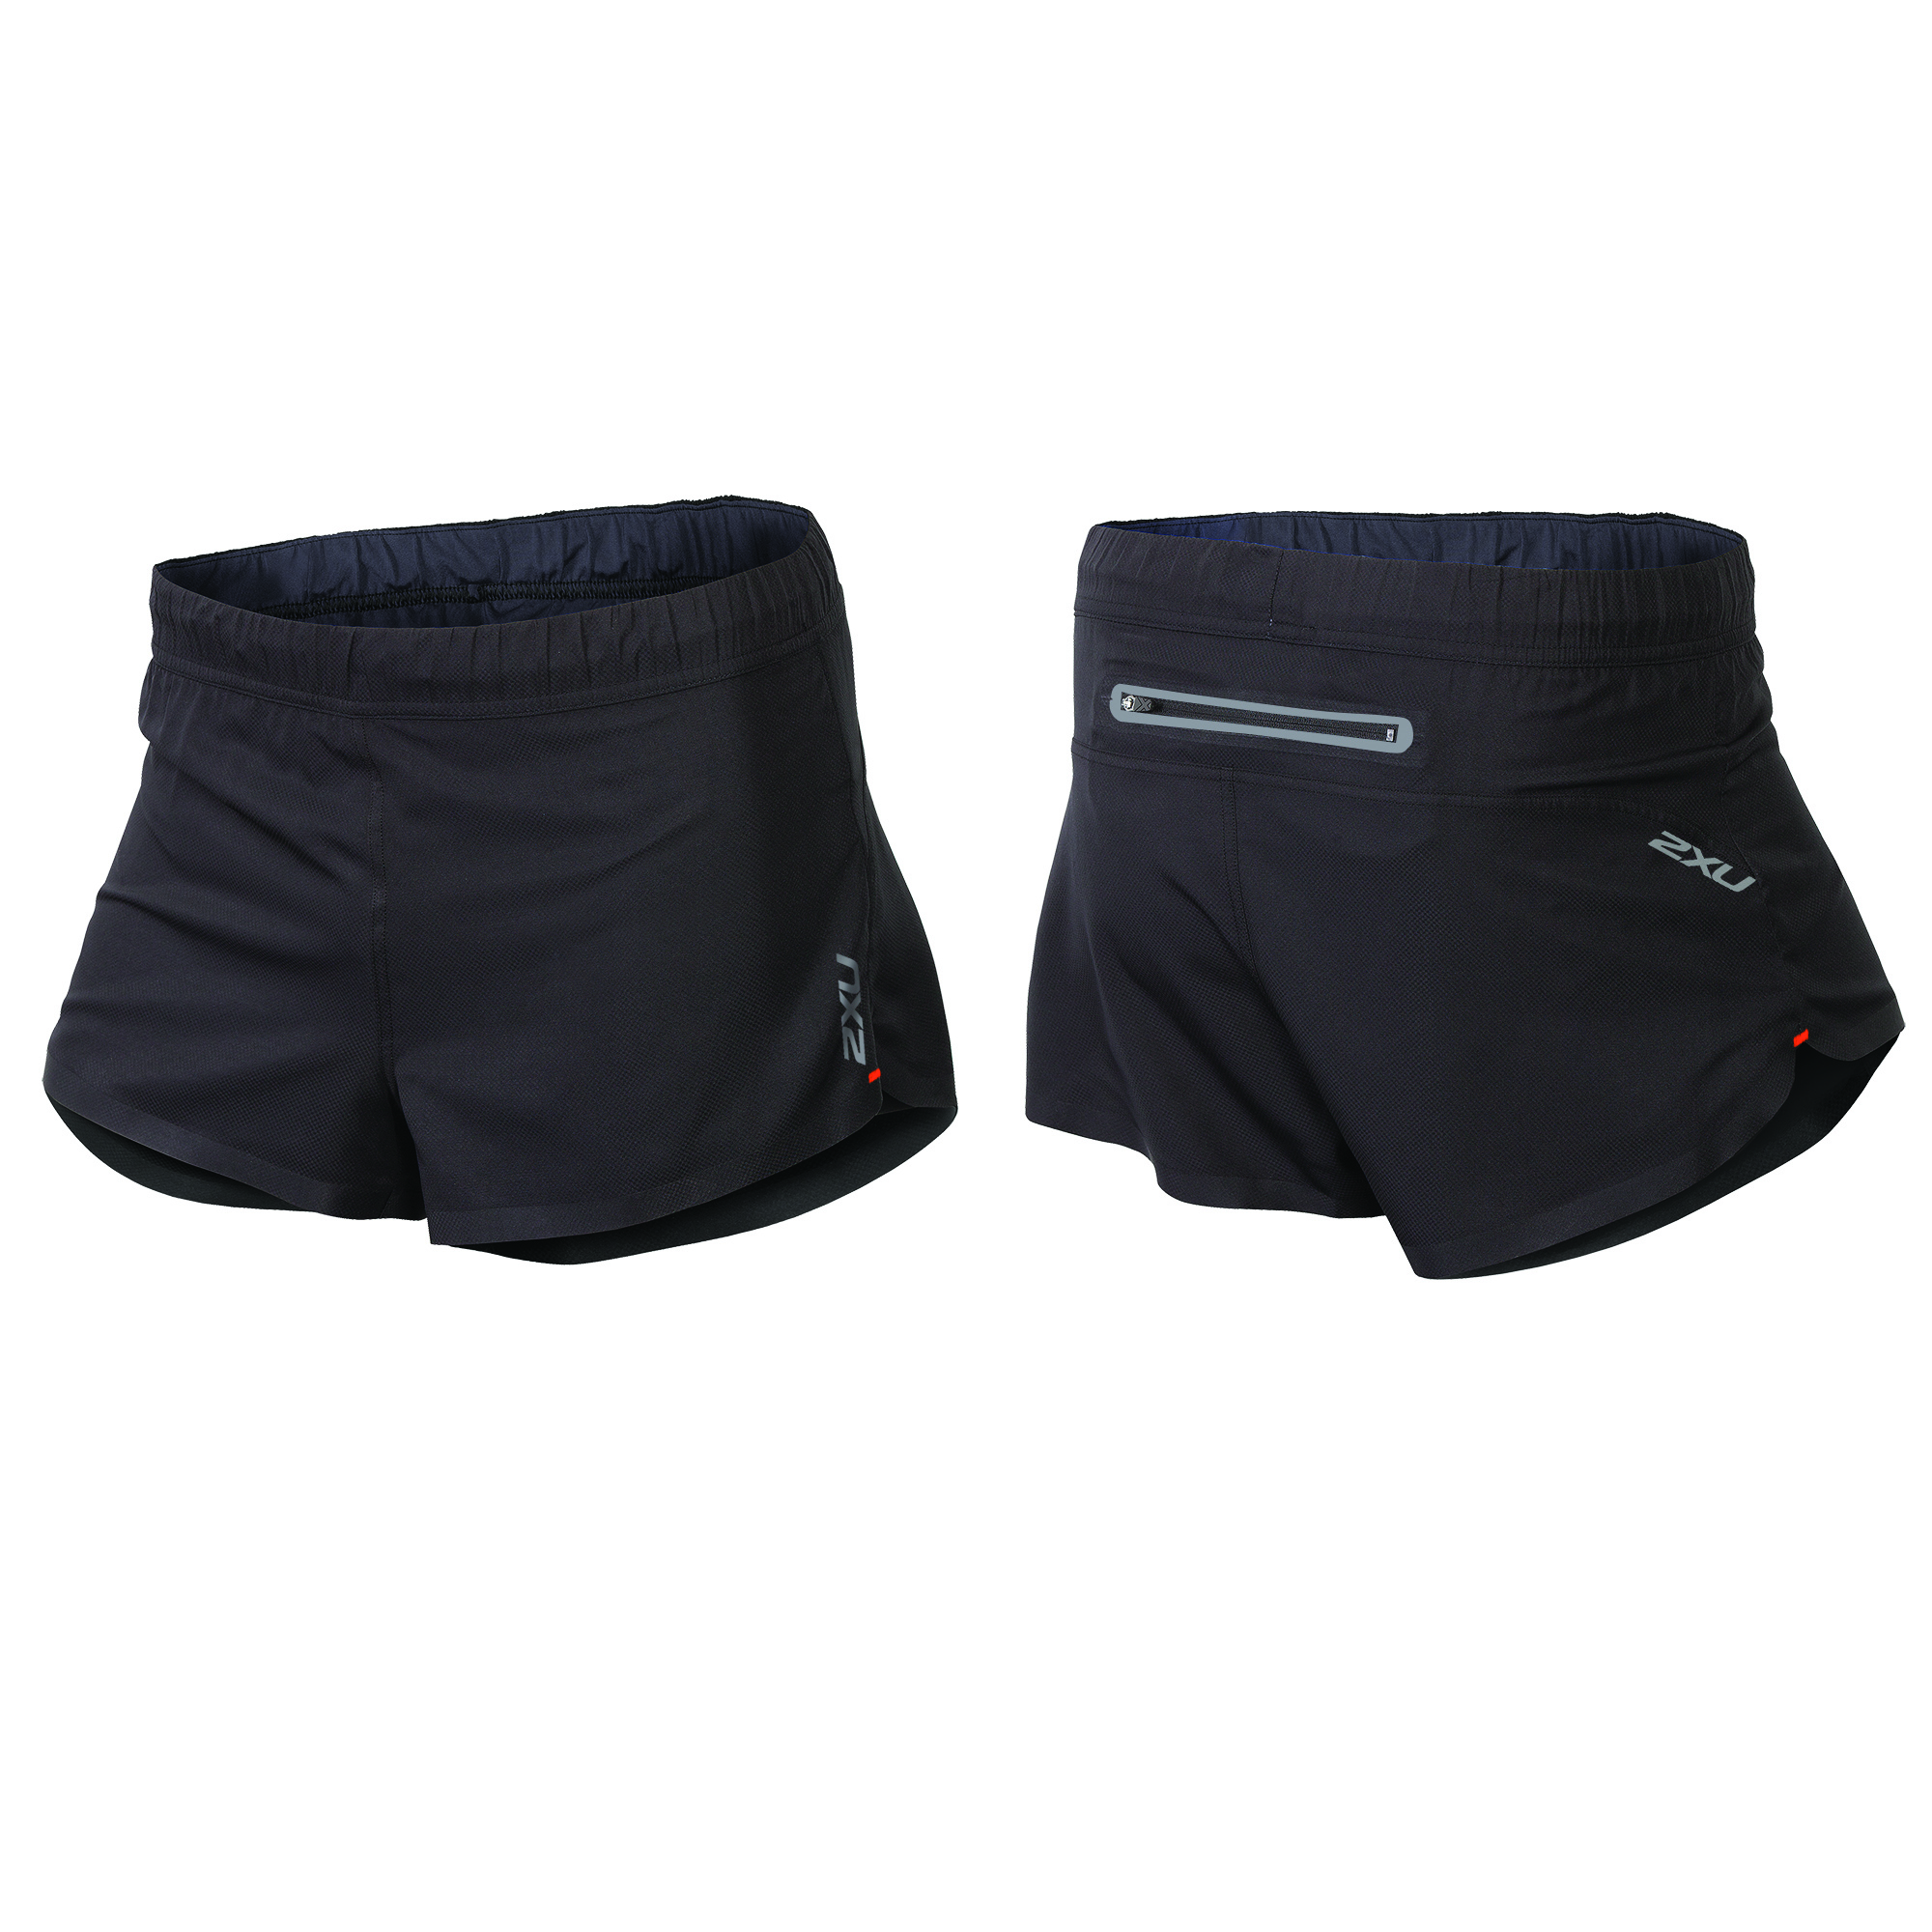 PANTALONCINO RUNNING 2XU GHST 2.5INCH MEN'S SPLIT SHORT MR3730B